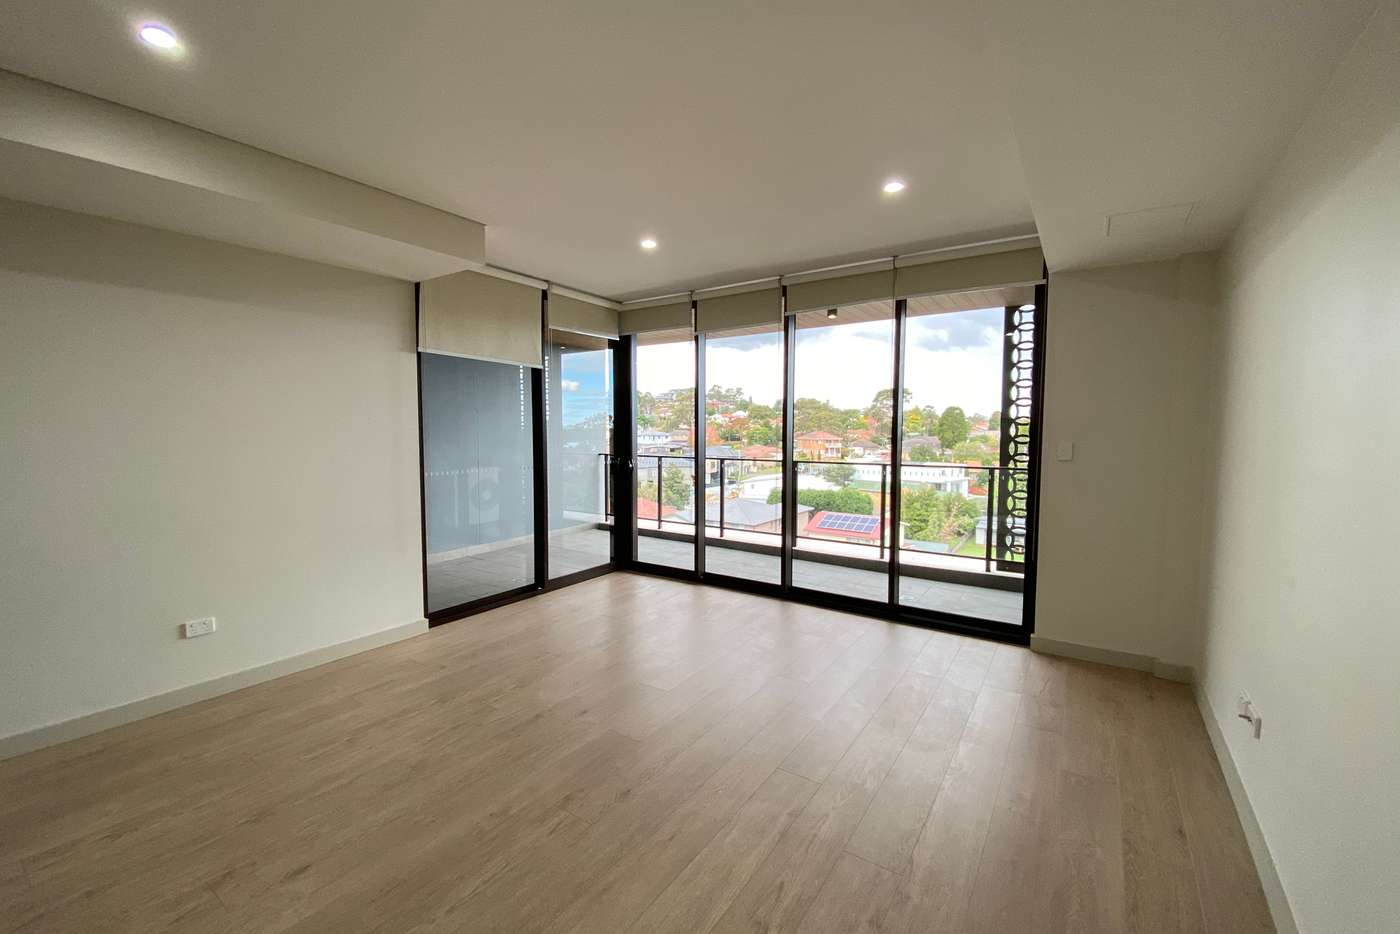 Main view of Homely apartment listing, 407/11 Porter Street, Meadowbank NSW 2114